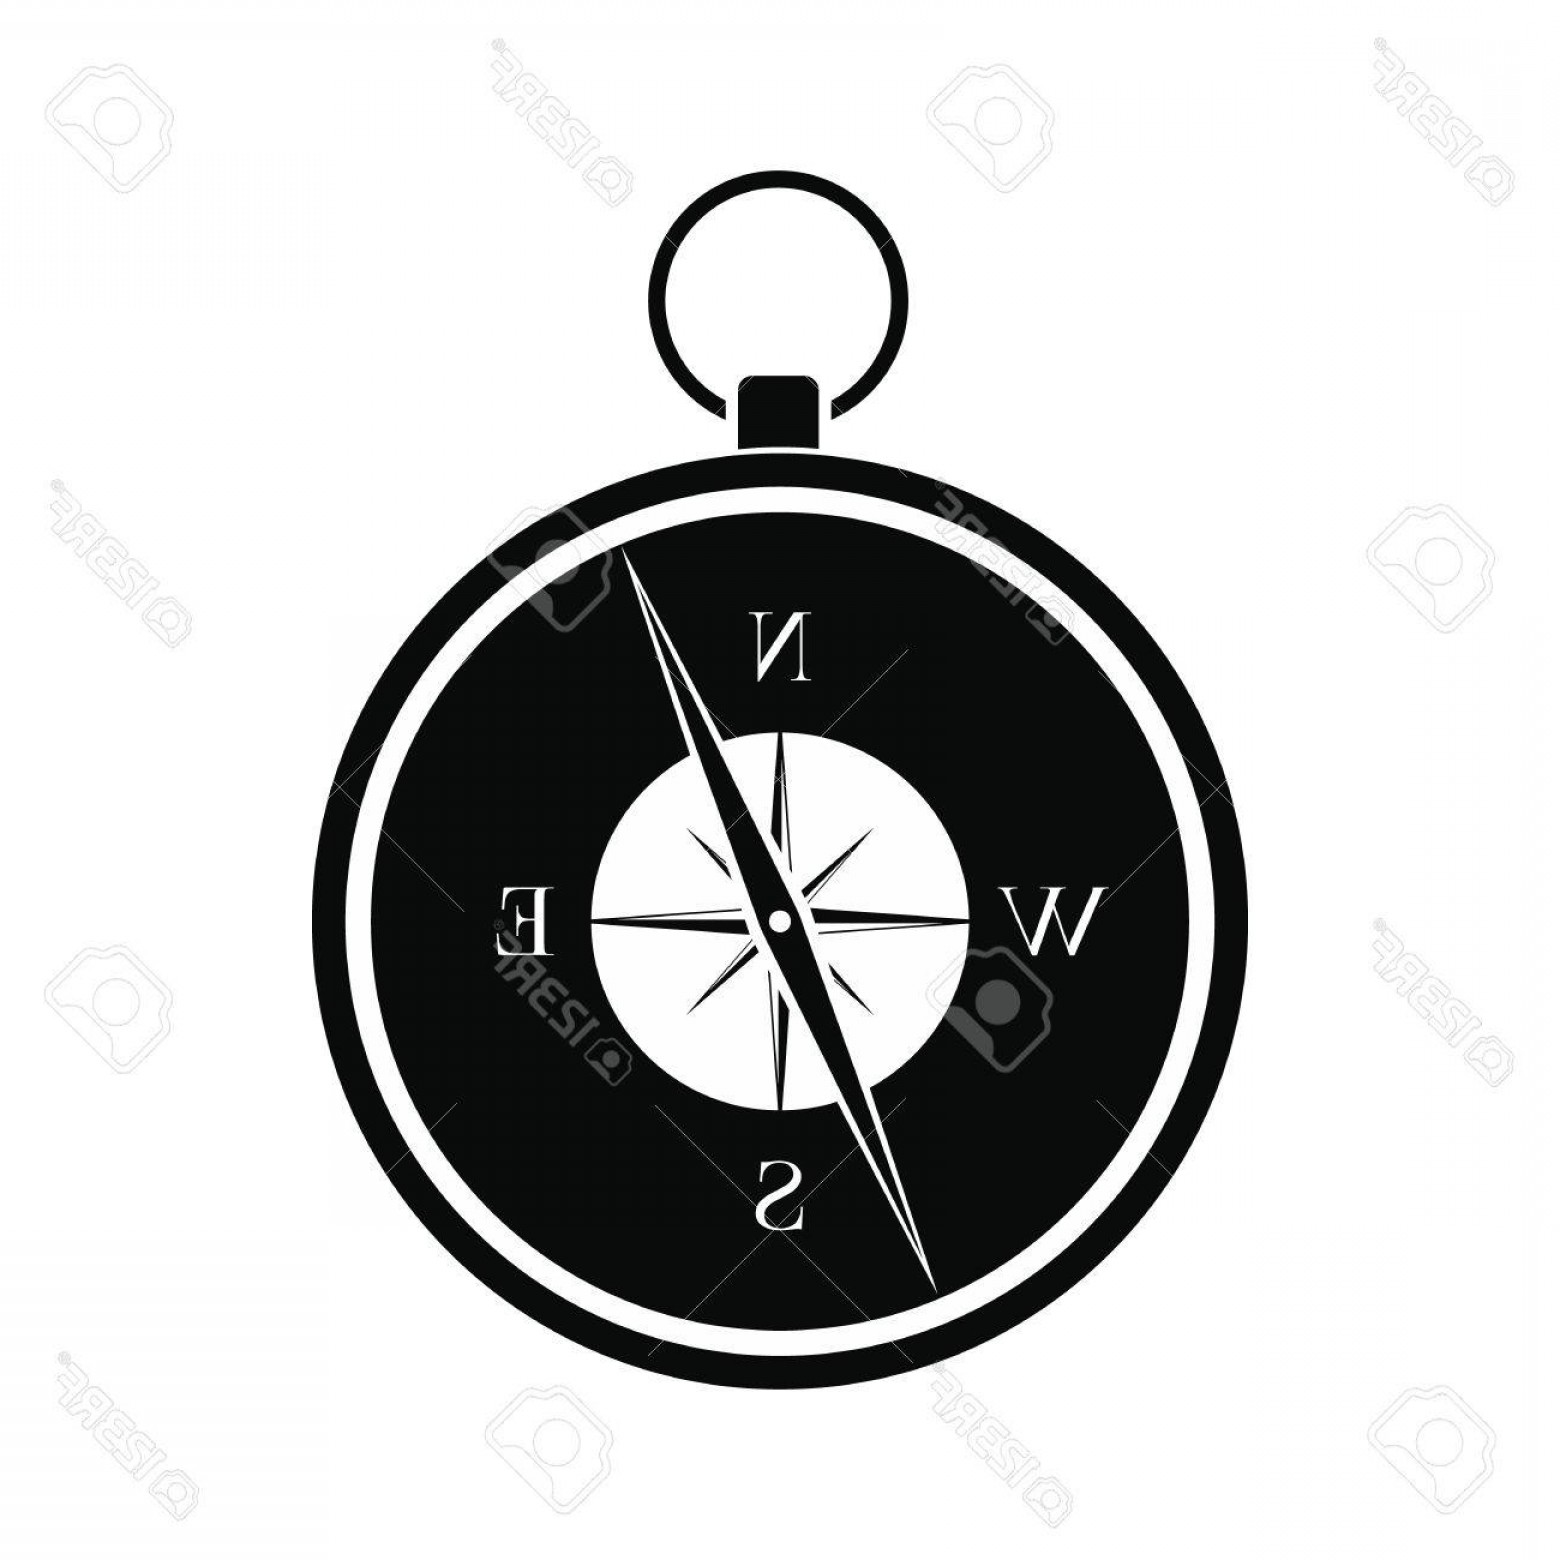 Simple Compass Vector Black And White: Photostock Vector Compass Black Simple Icon Isolated On White Background